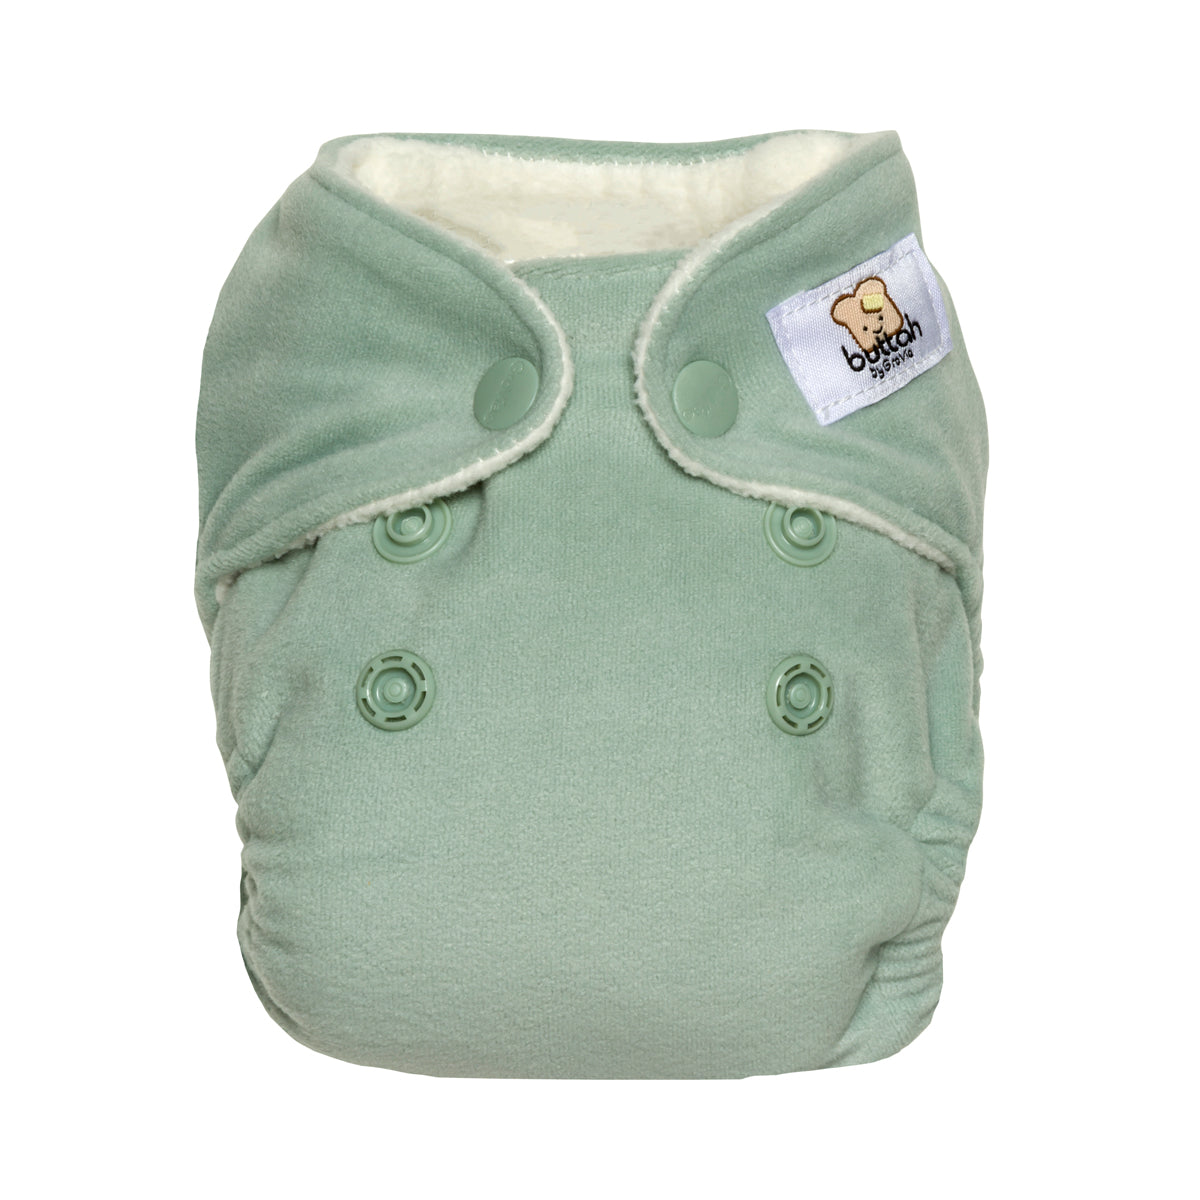 GroVia Buttah Newborn All in One Diaper - Glacier - Crunch Natural Parenting is where to buy